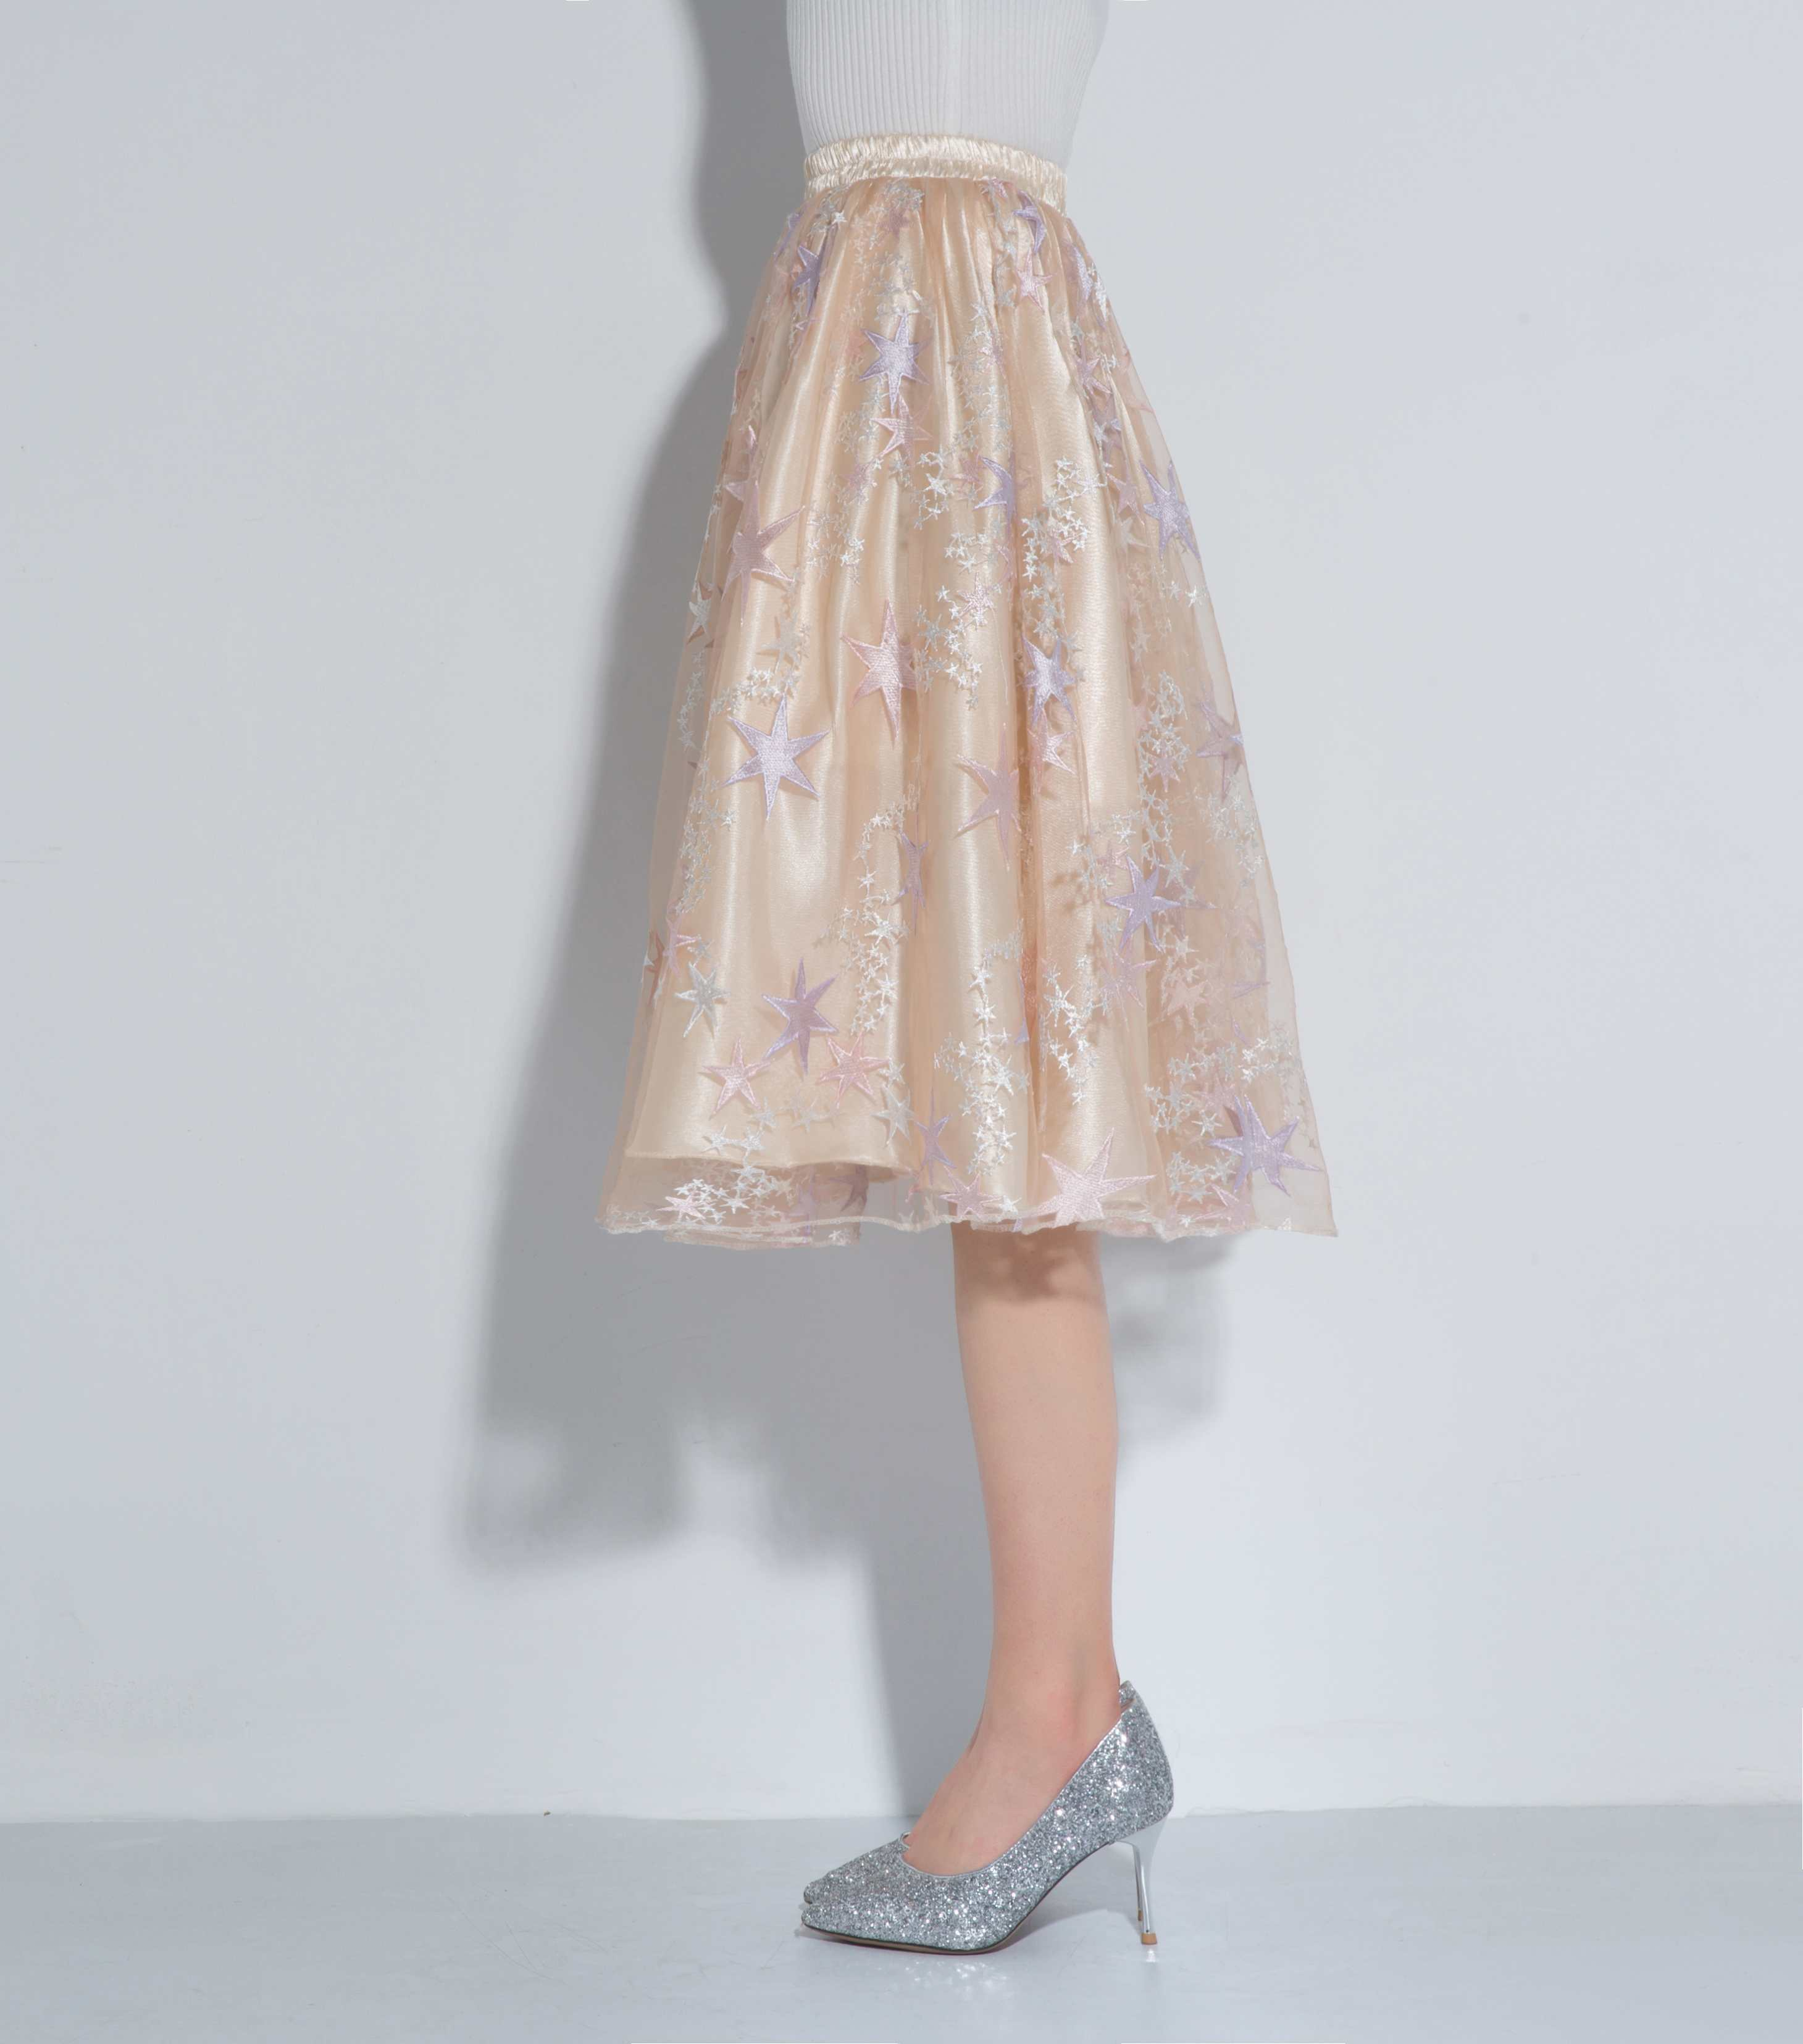 Unique Champagne Star Pattern Petticoat Knee Length High Quality Soft Skirt in Petticoats from Weddings Events